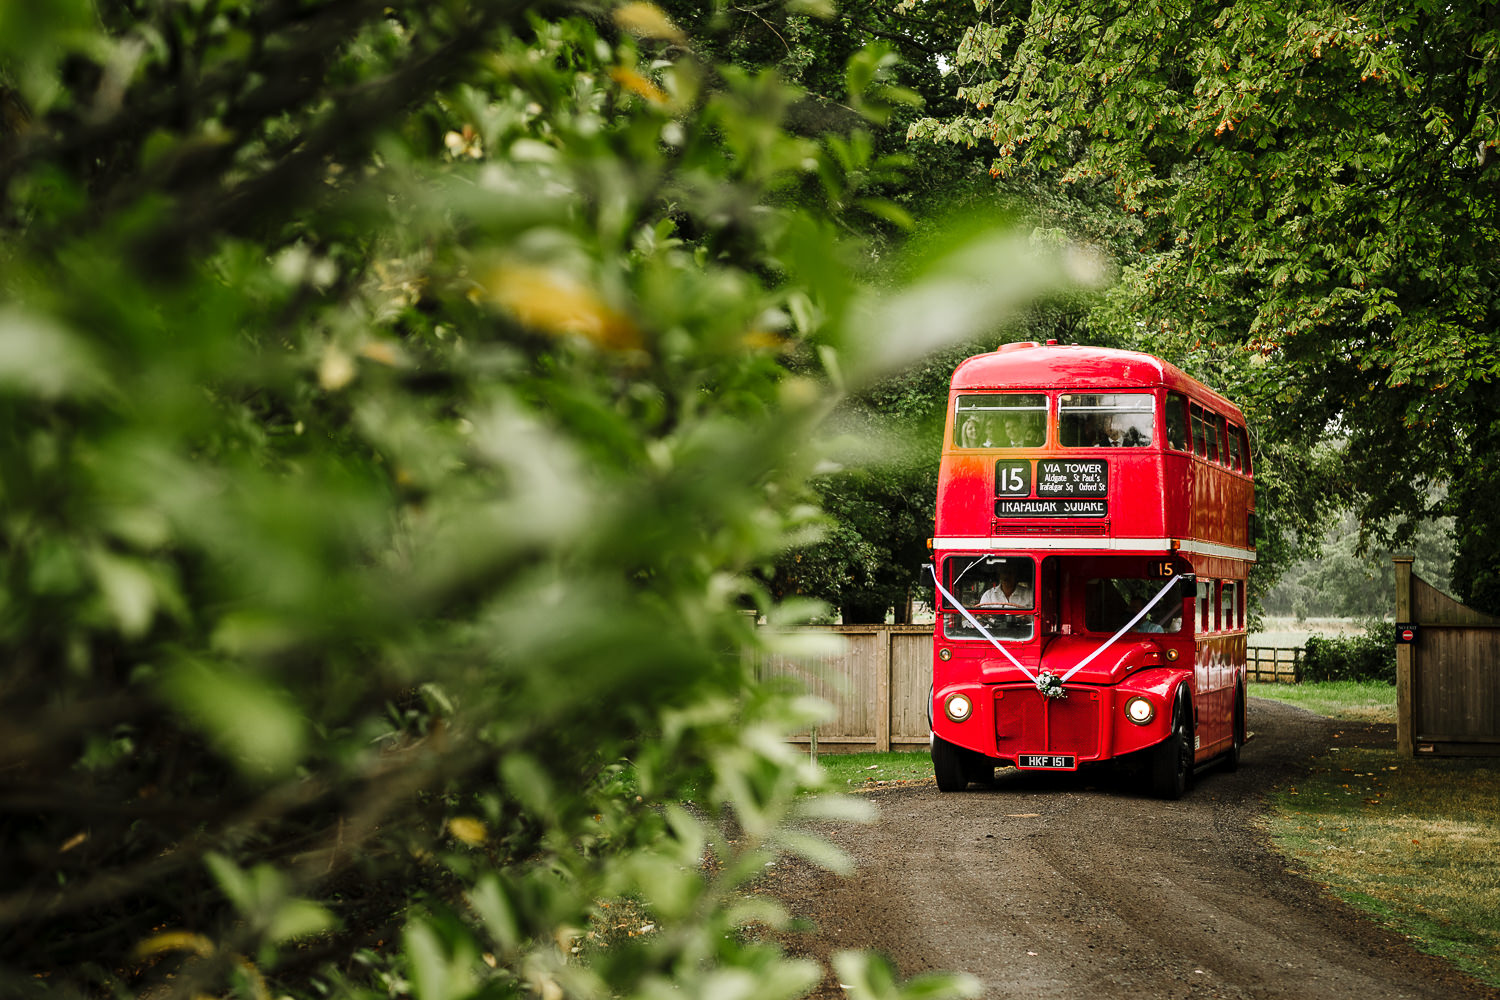 Wedding guests arriving by vintage bus